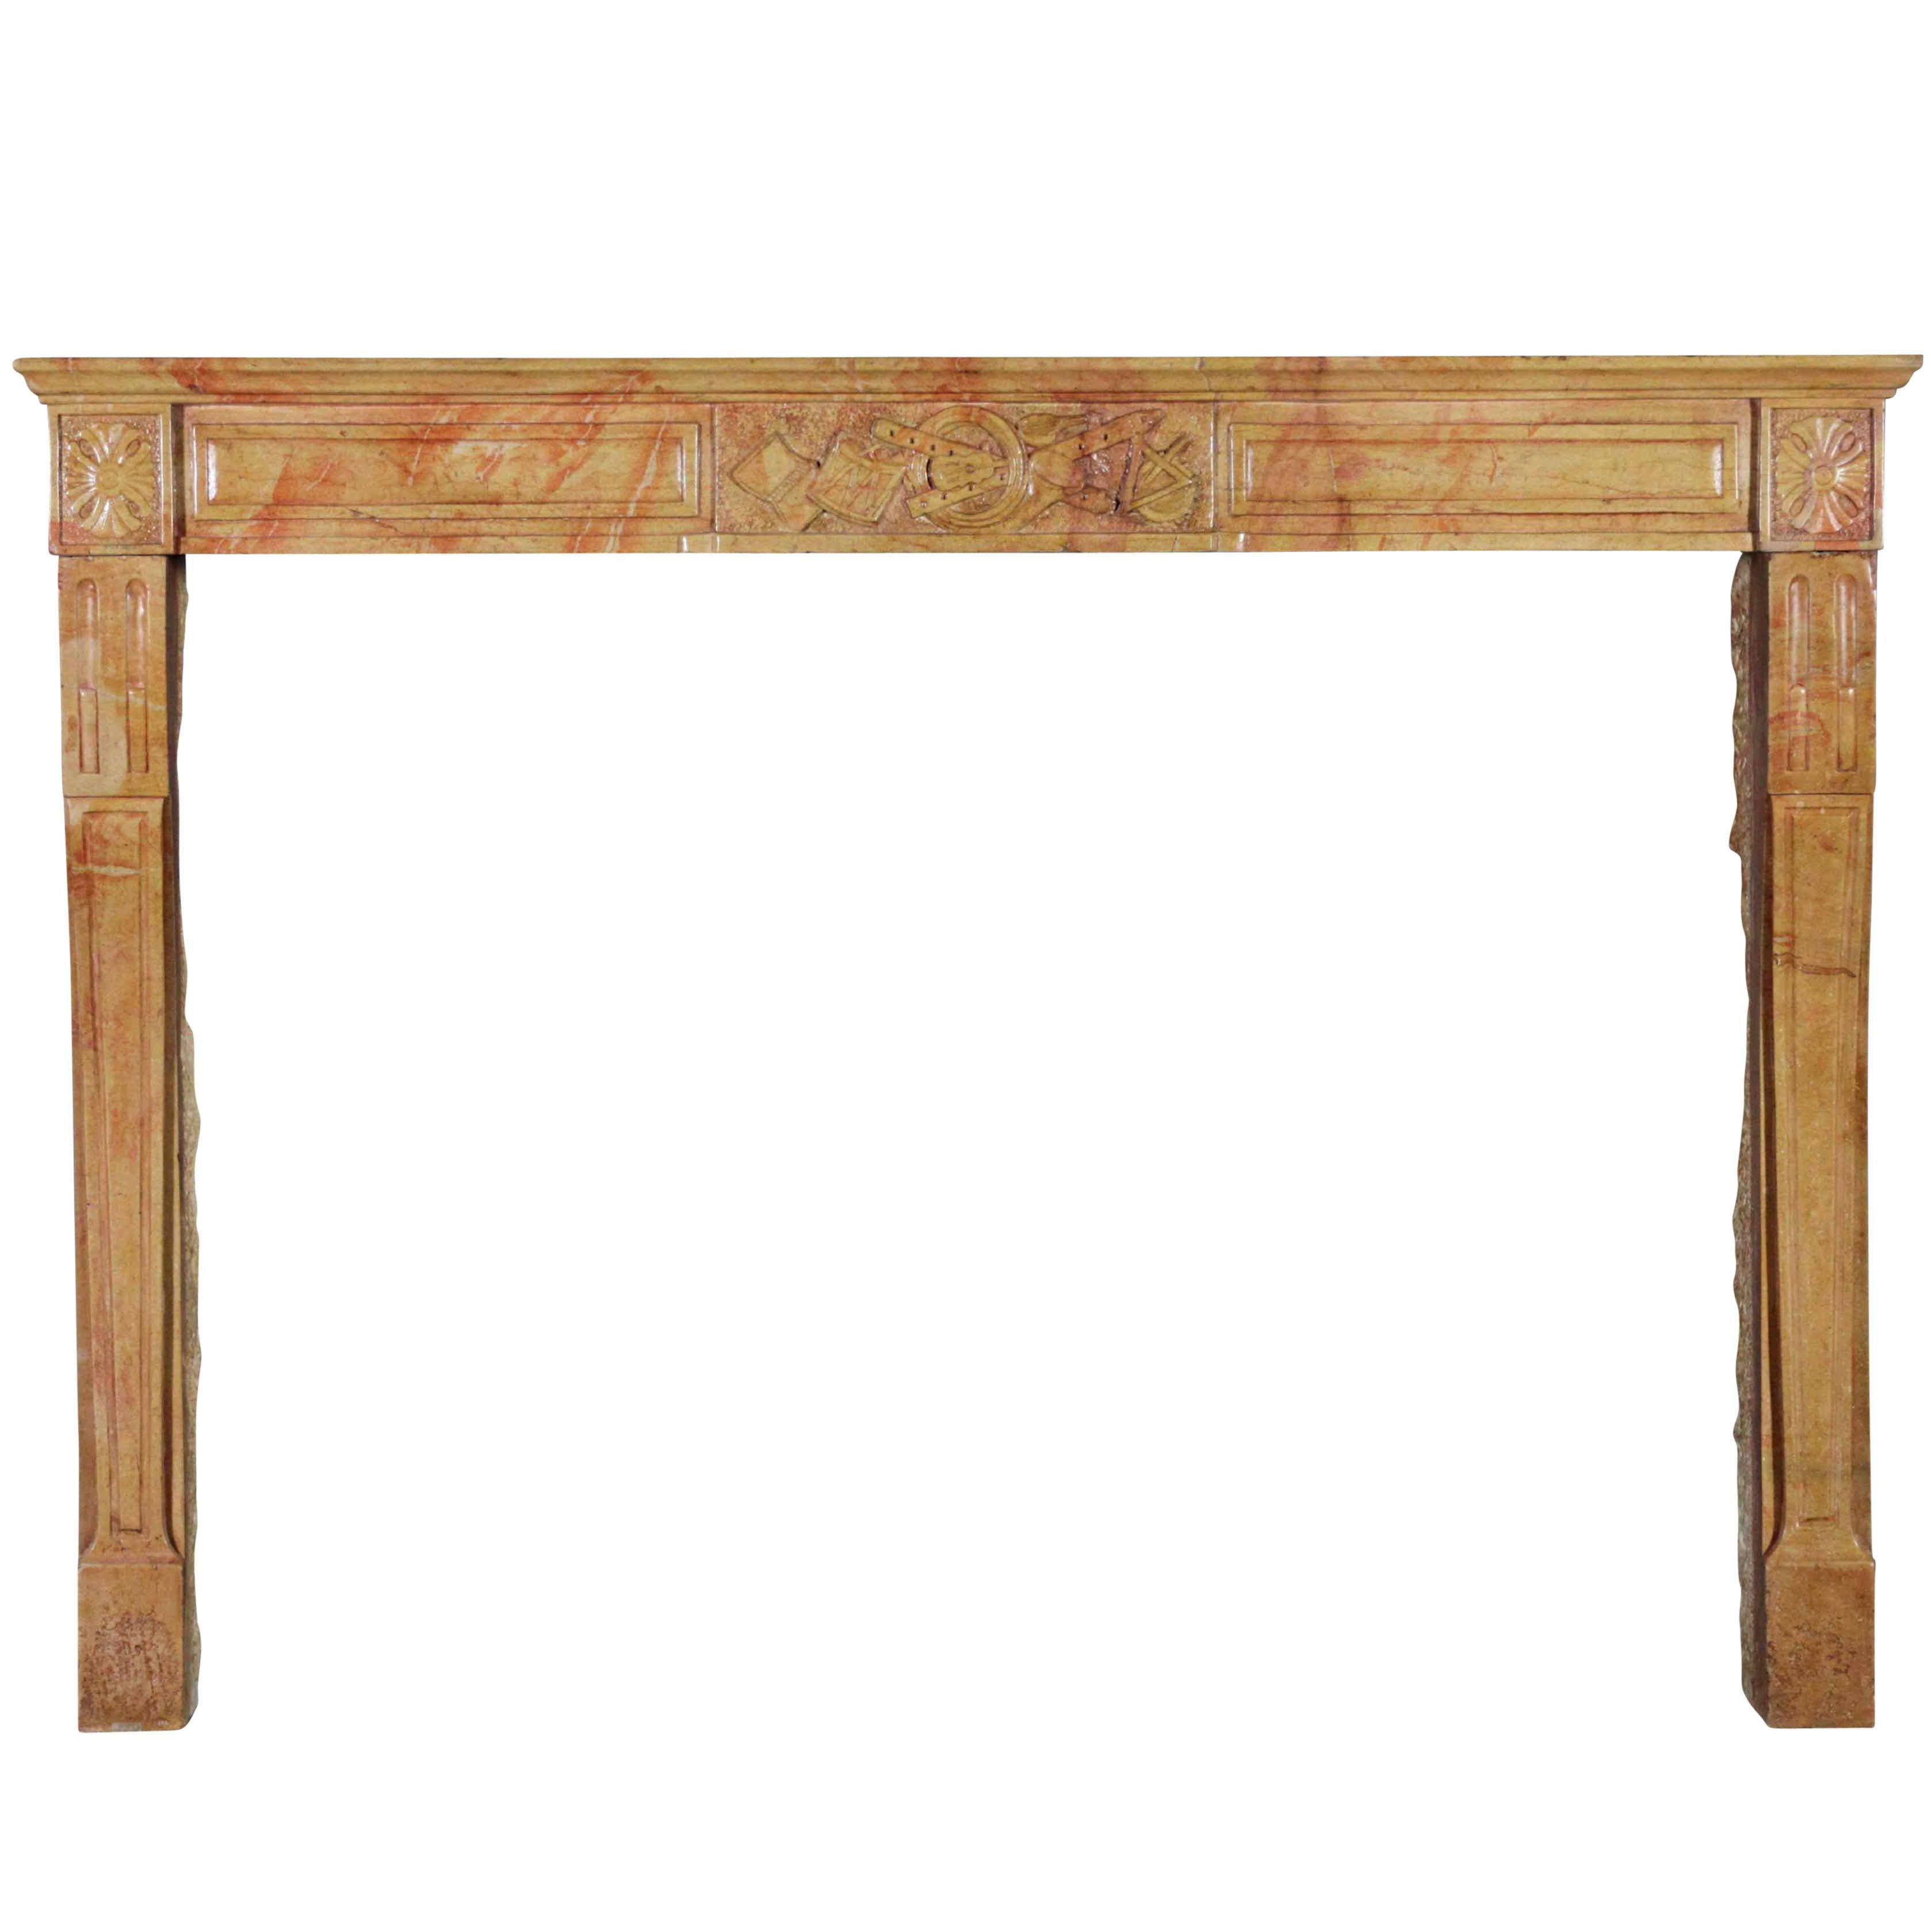 Fine Bicolor Marble Stone French Antique Fireplace Surround